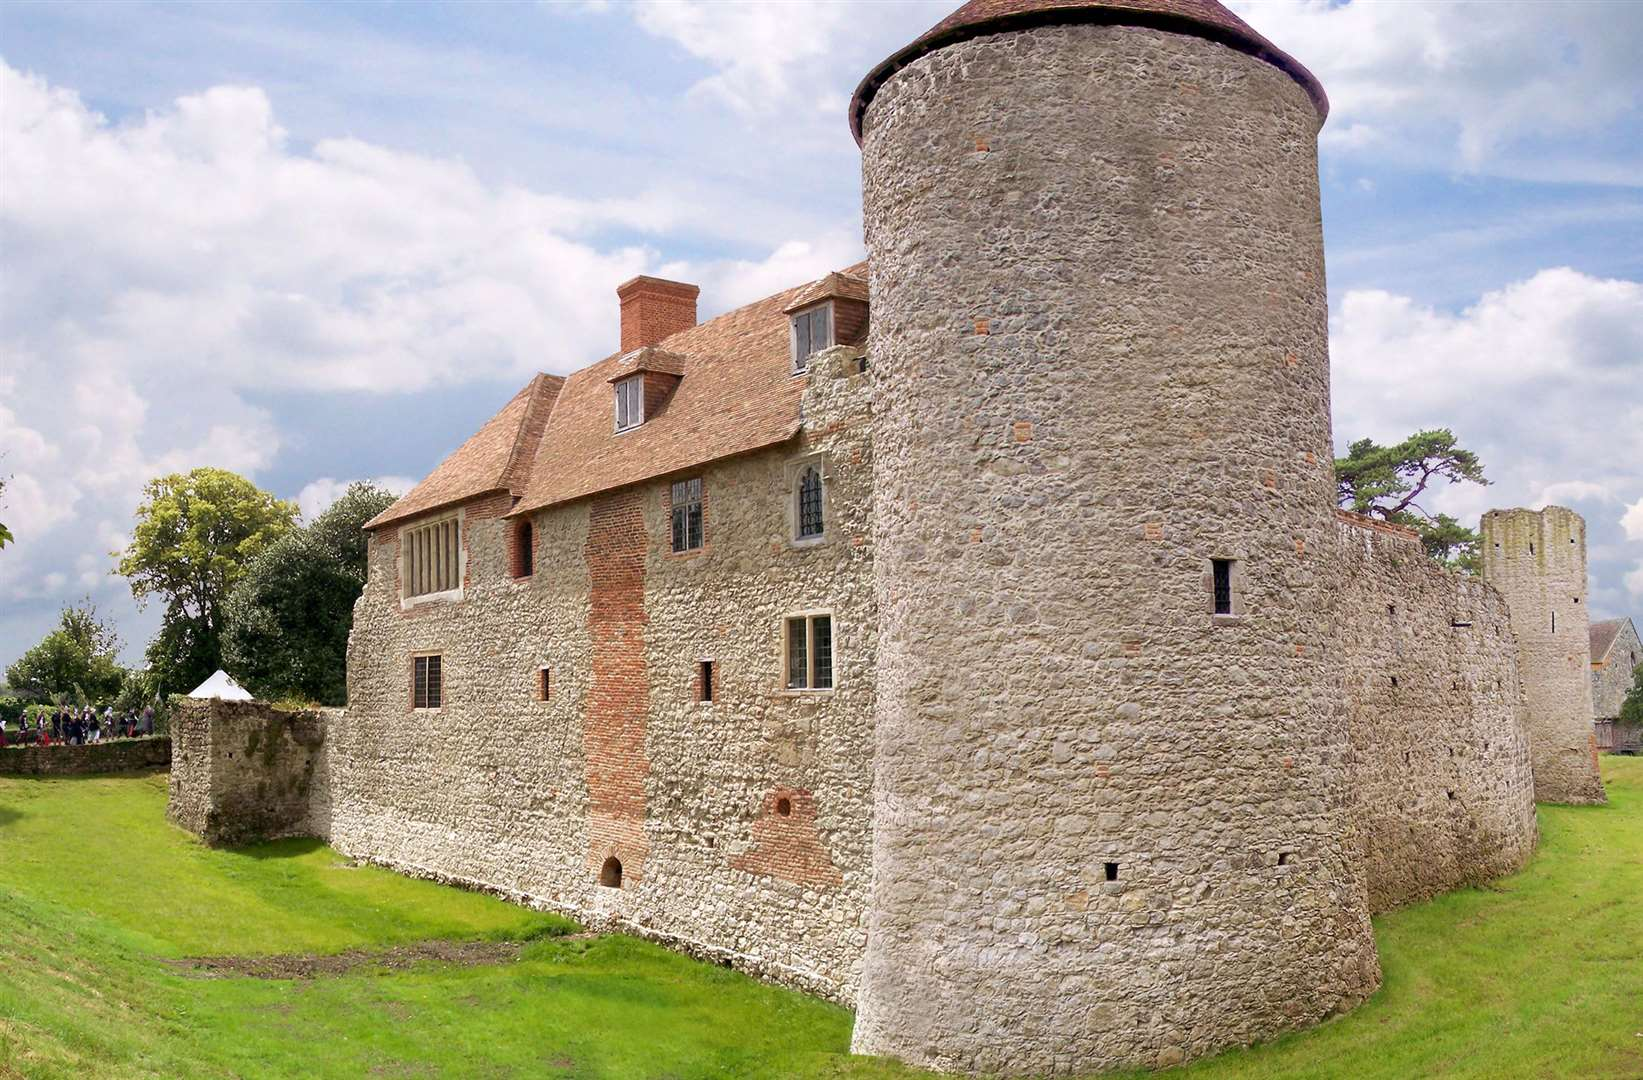 Westenhanger Castle dates from the 14th century